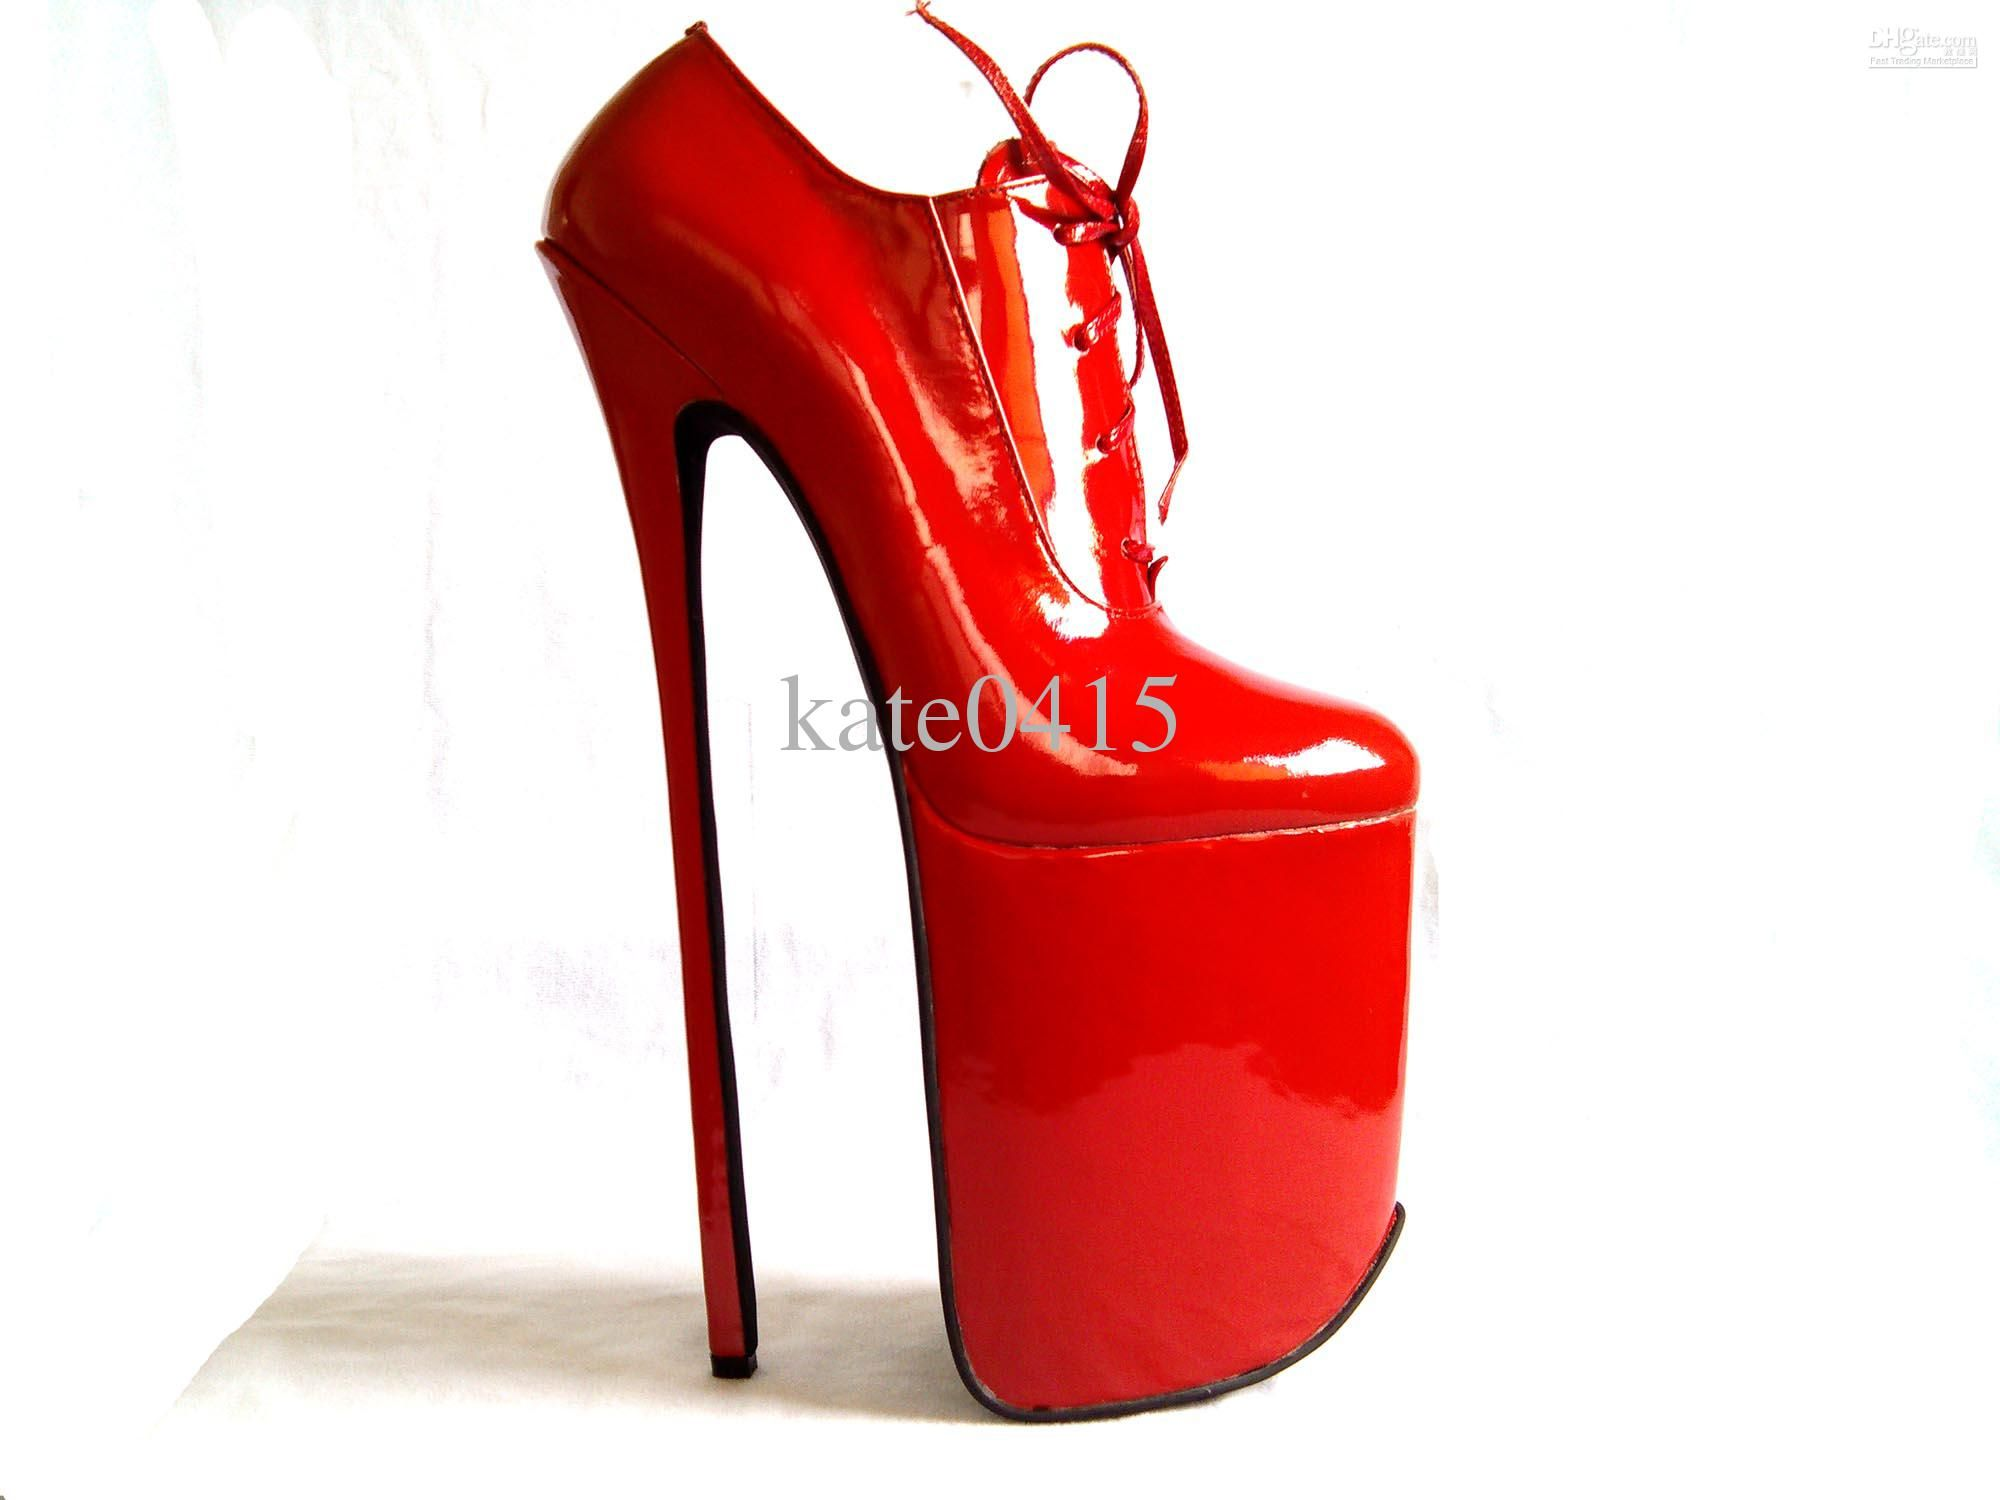 6d4504966994 12 Inches High Heel Red Pumps